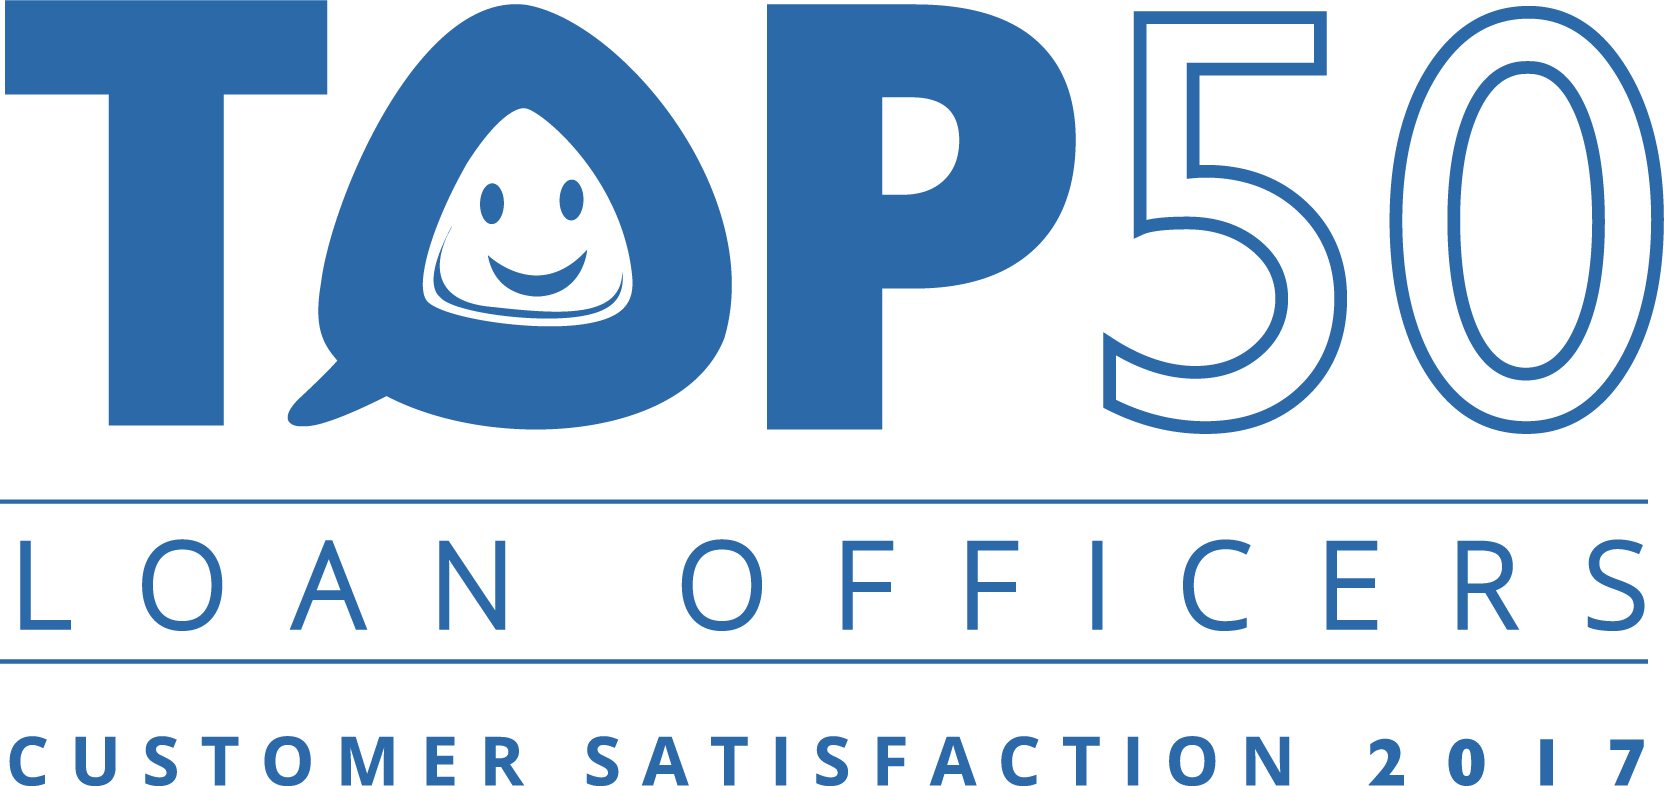 Top 50 Loan officers in Customer Satisfaction